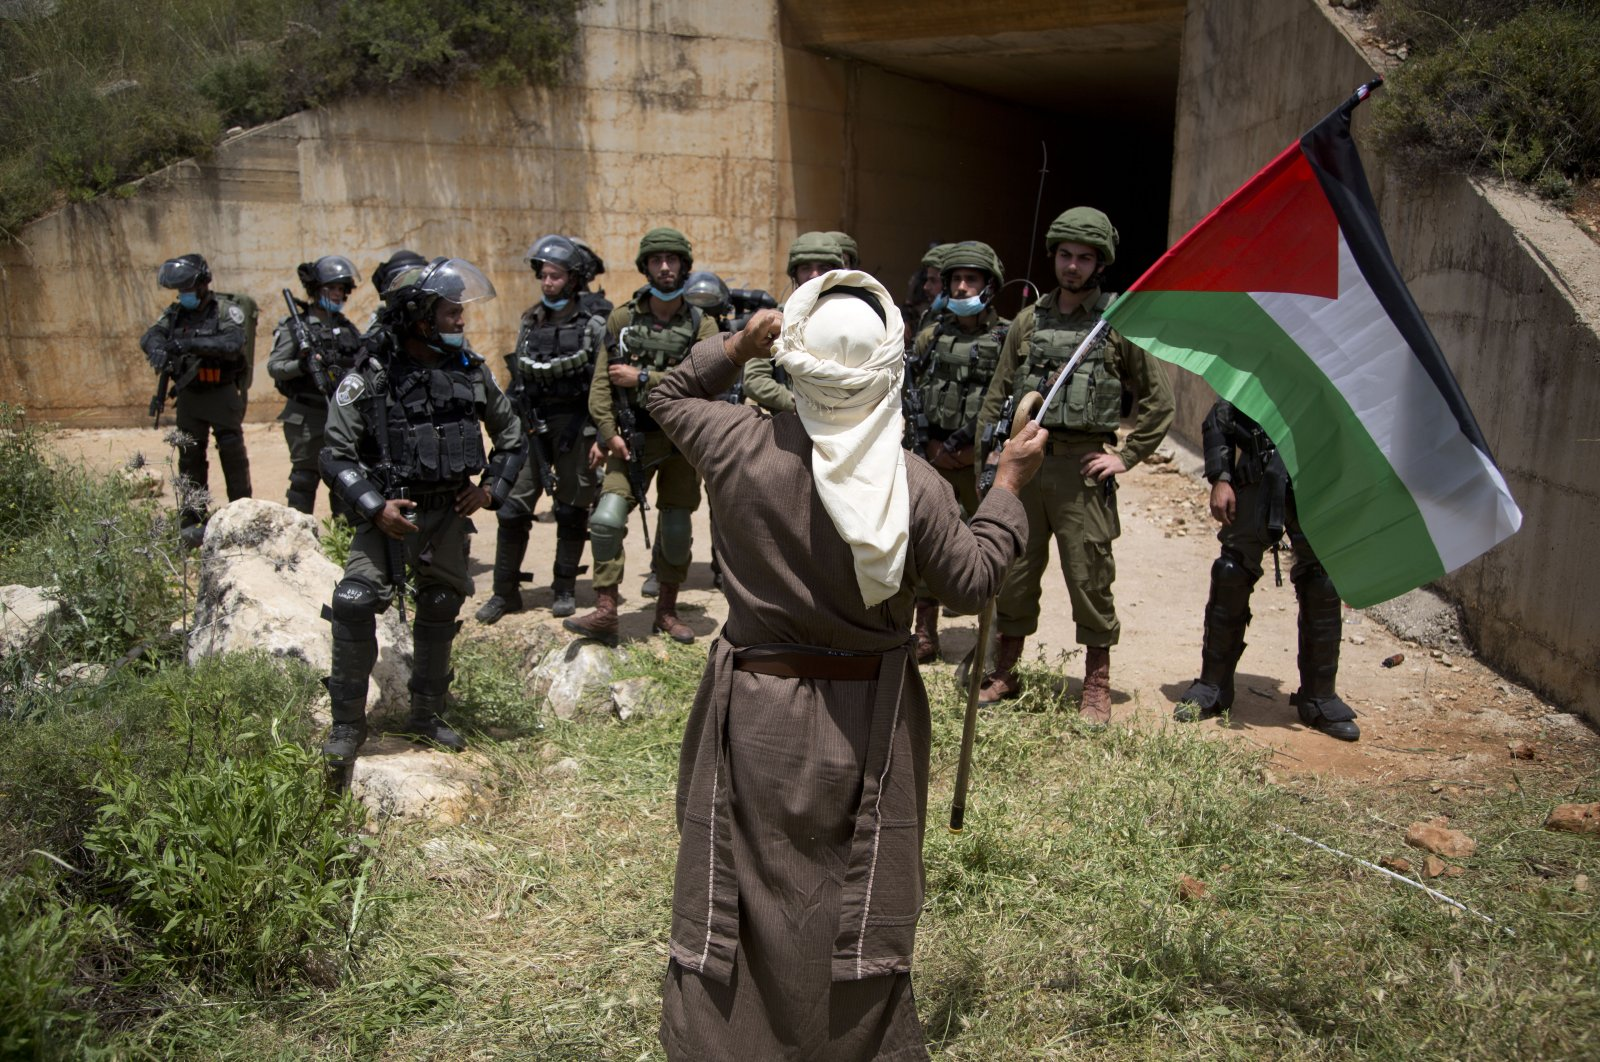 """A Palestinian holds the national flag in front of Israeli border police during a protest marking the 72nd anniversary """"Nakba,"""" or catastrophe – a leading symbol against the Israeli annexations and occupations, near the West Bank city of Nablus, May 15, 2020. (AP Photo)"""